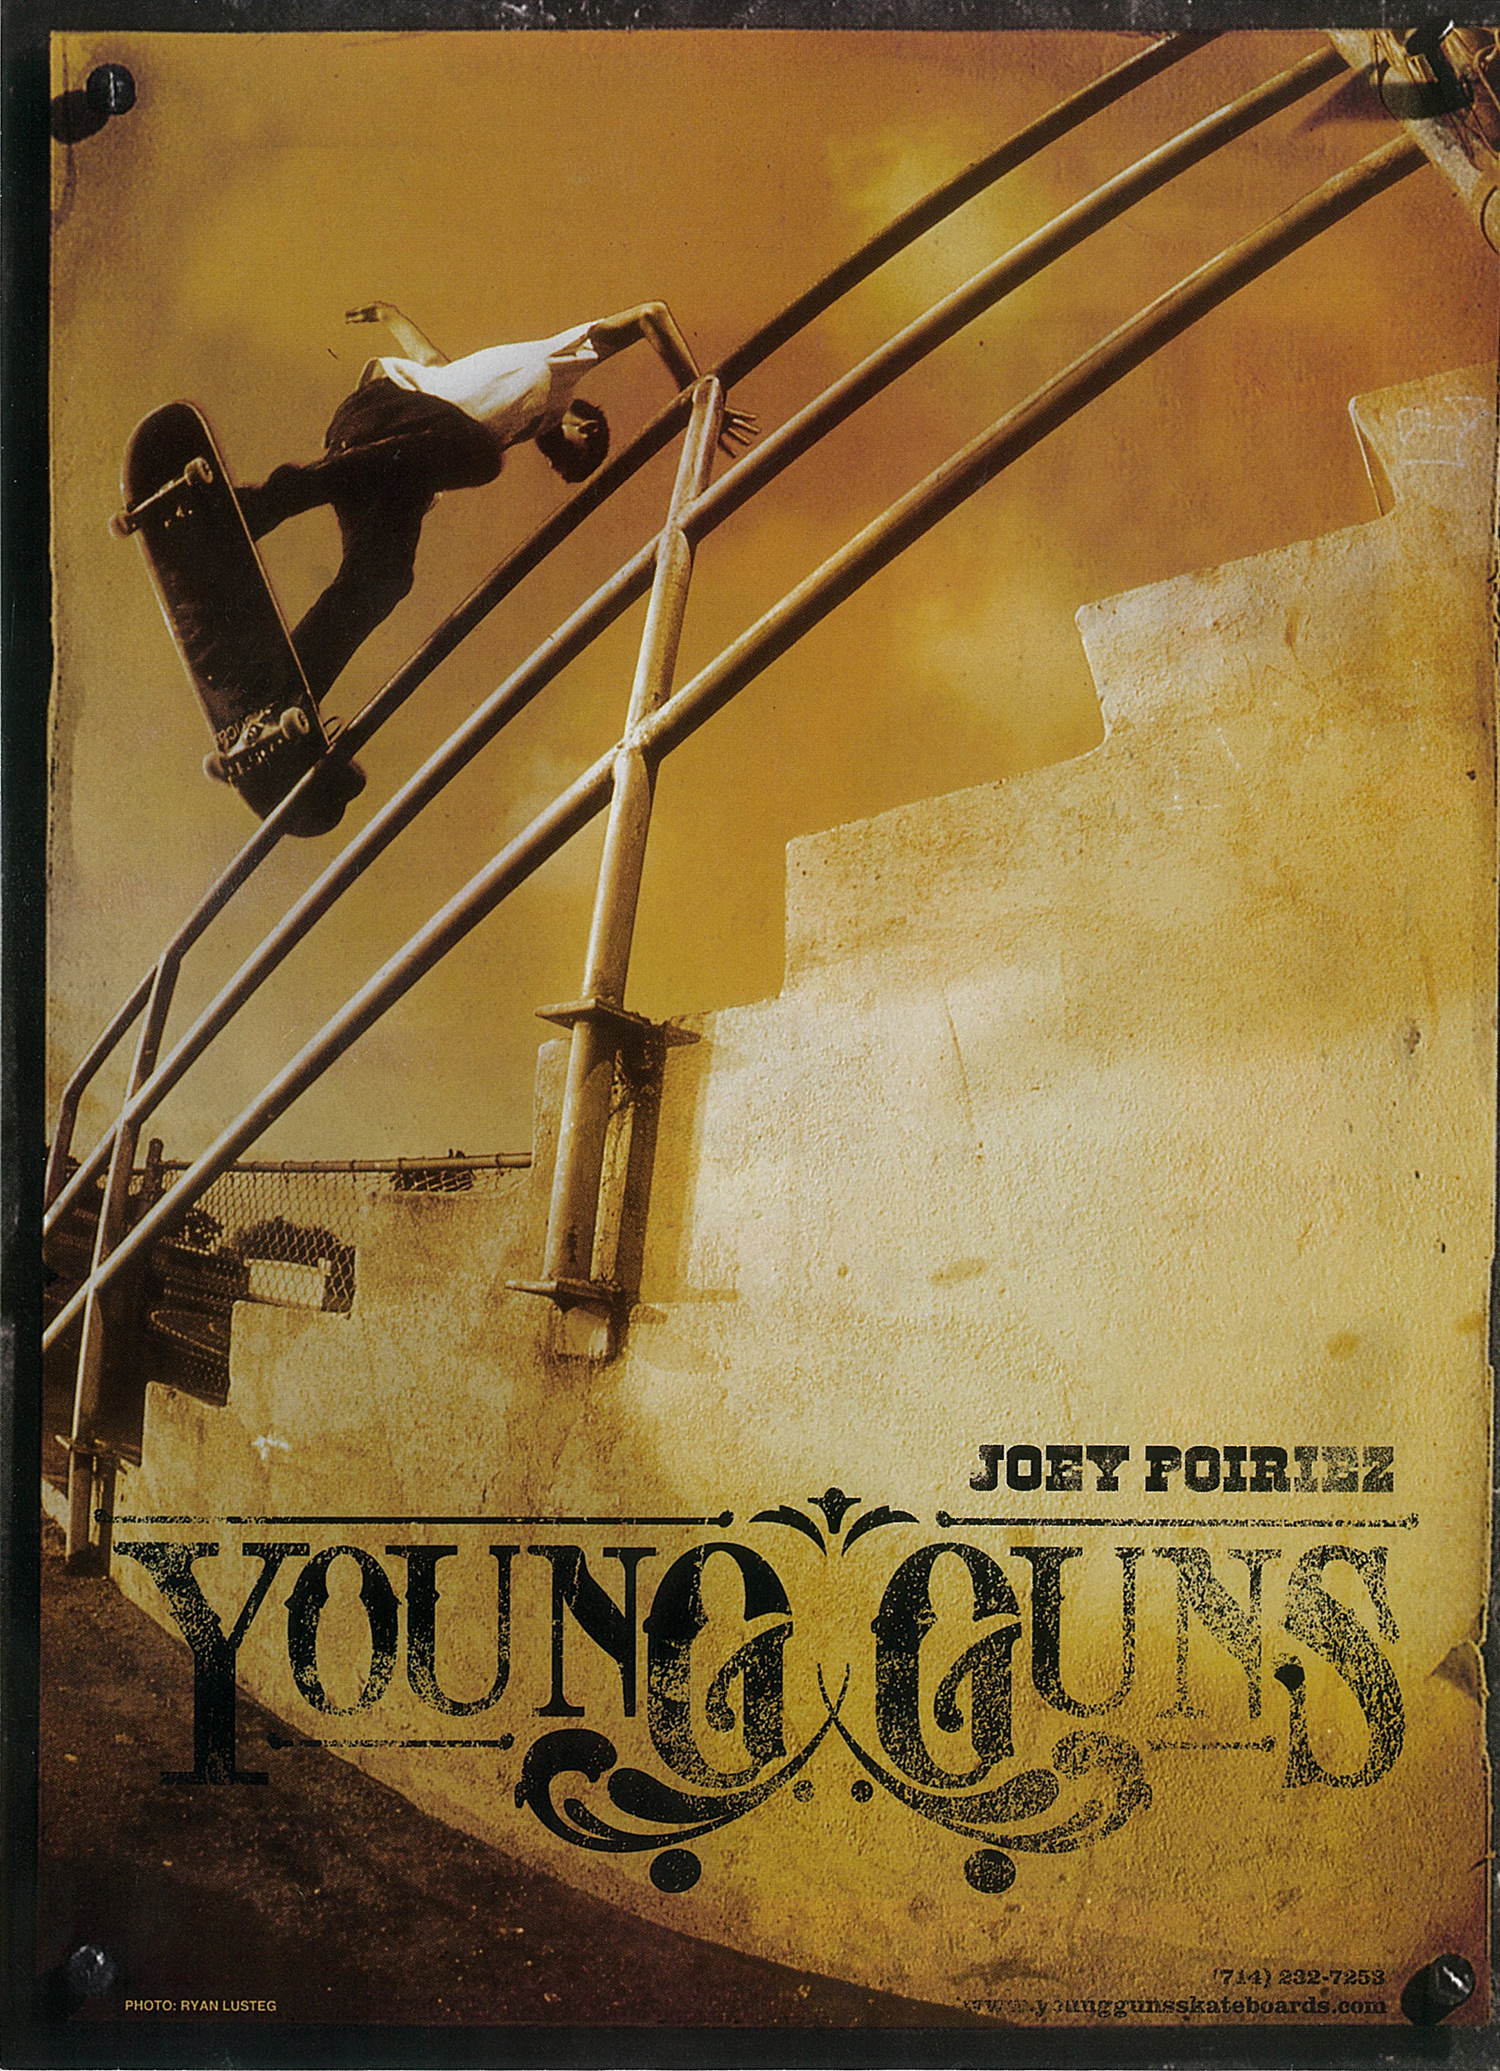 02_joey_poiriez_young_guns.jpg